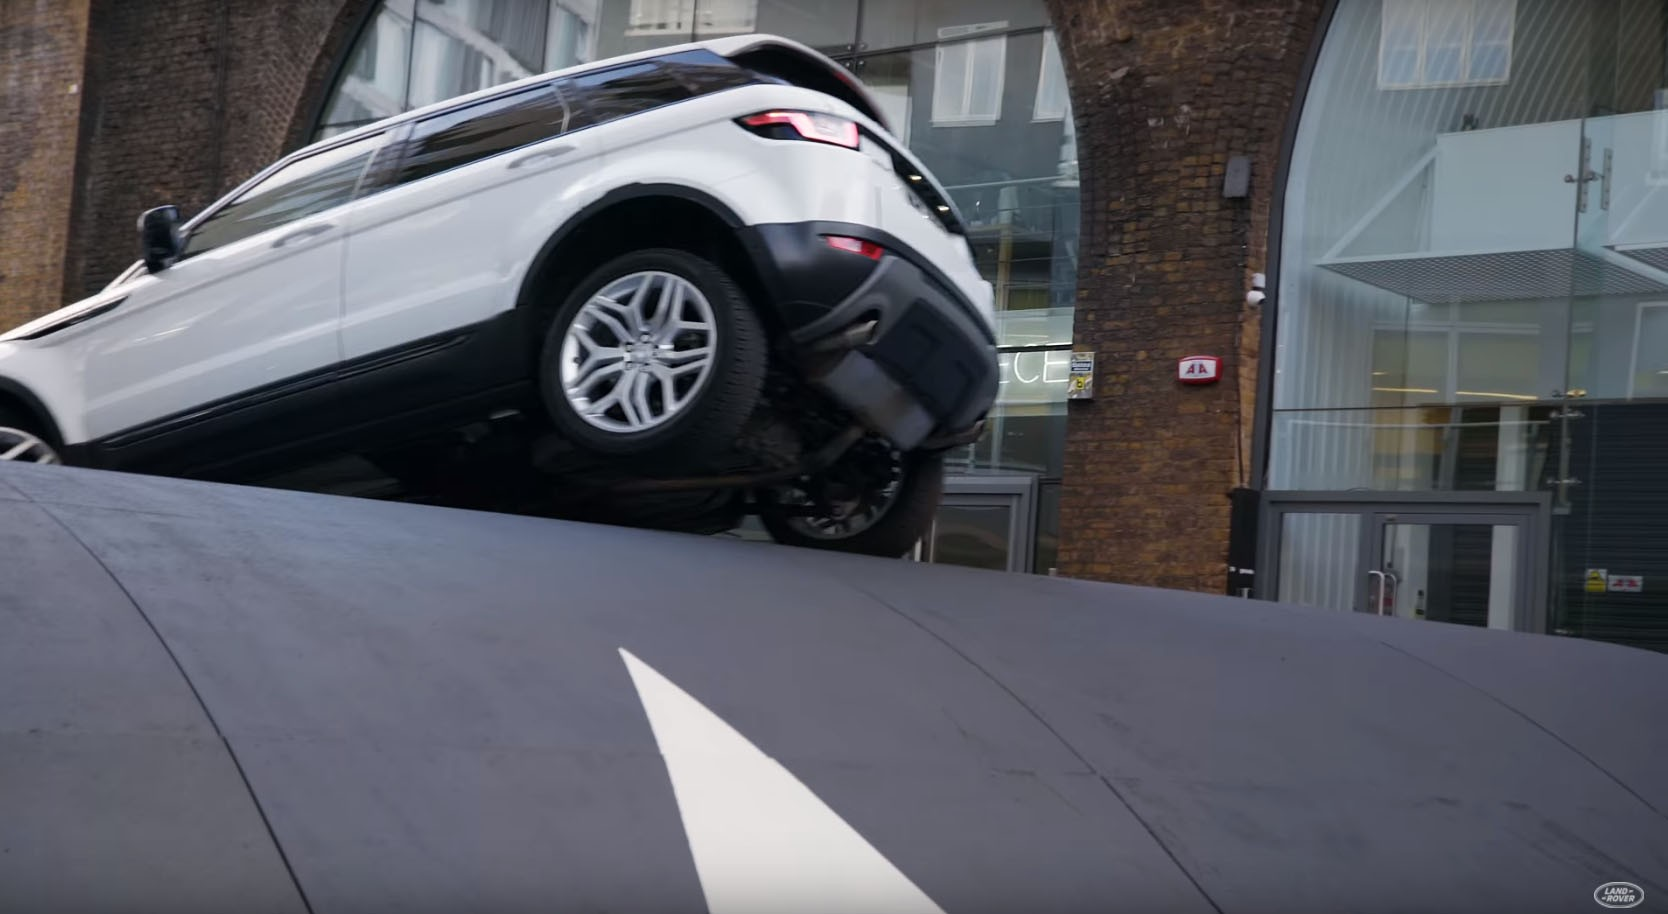 Range Rover Evoque Admits to Its Urban Nature in Oversized Speed ...